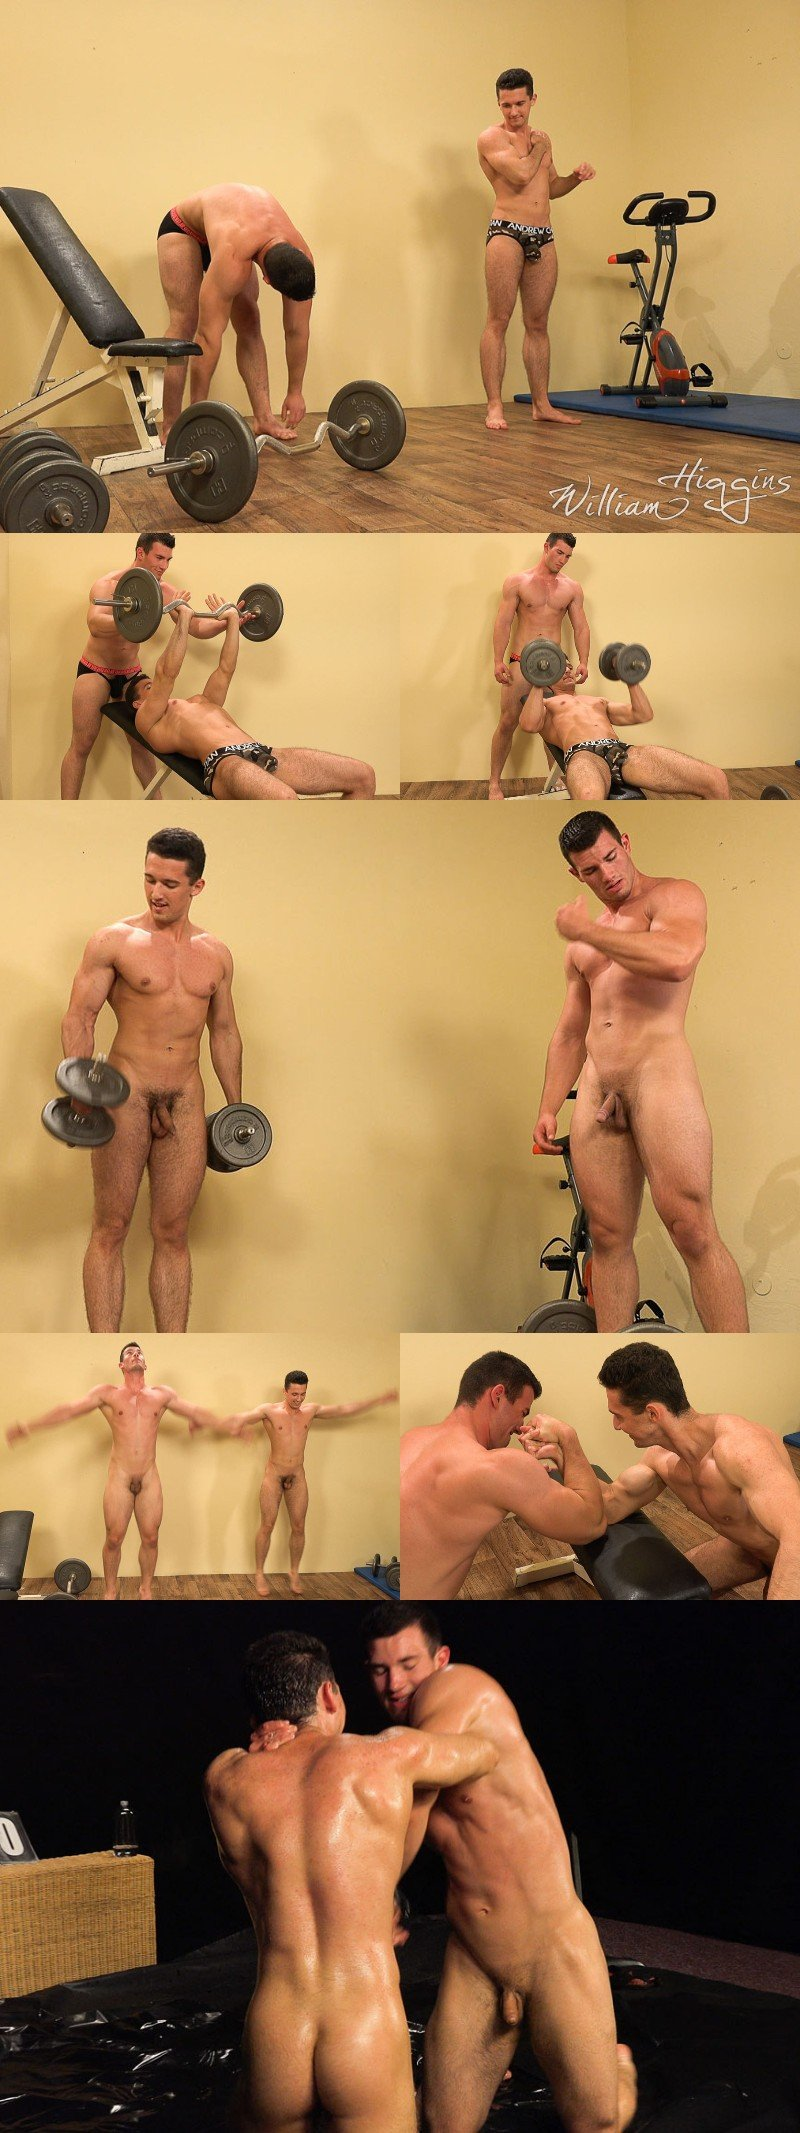 Czech Studs Lift Weights, Wrestle & Jack Off Together